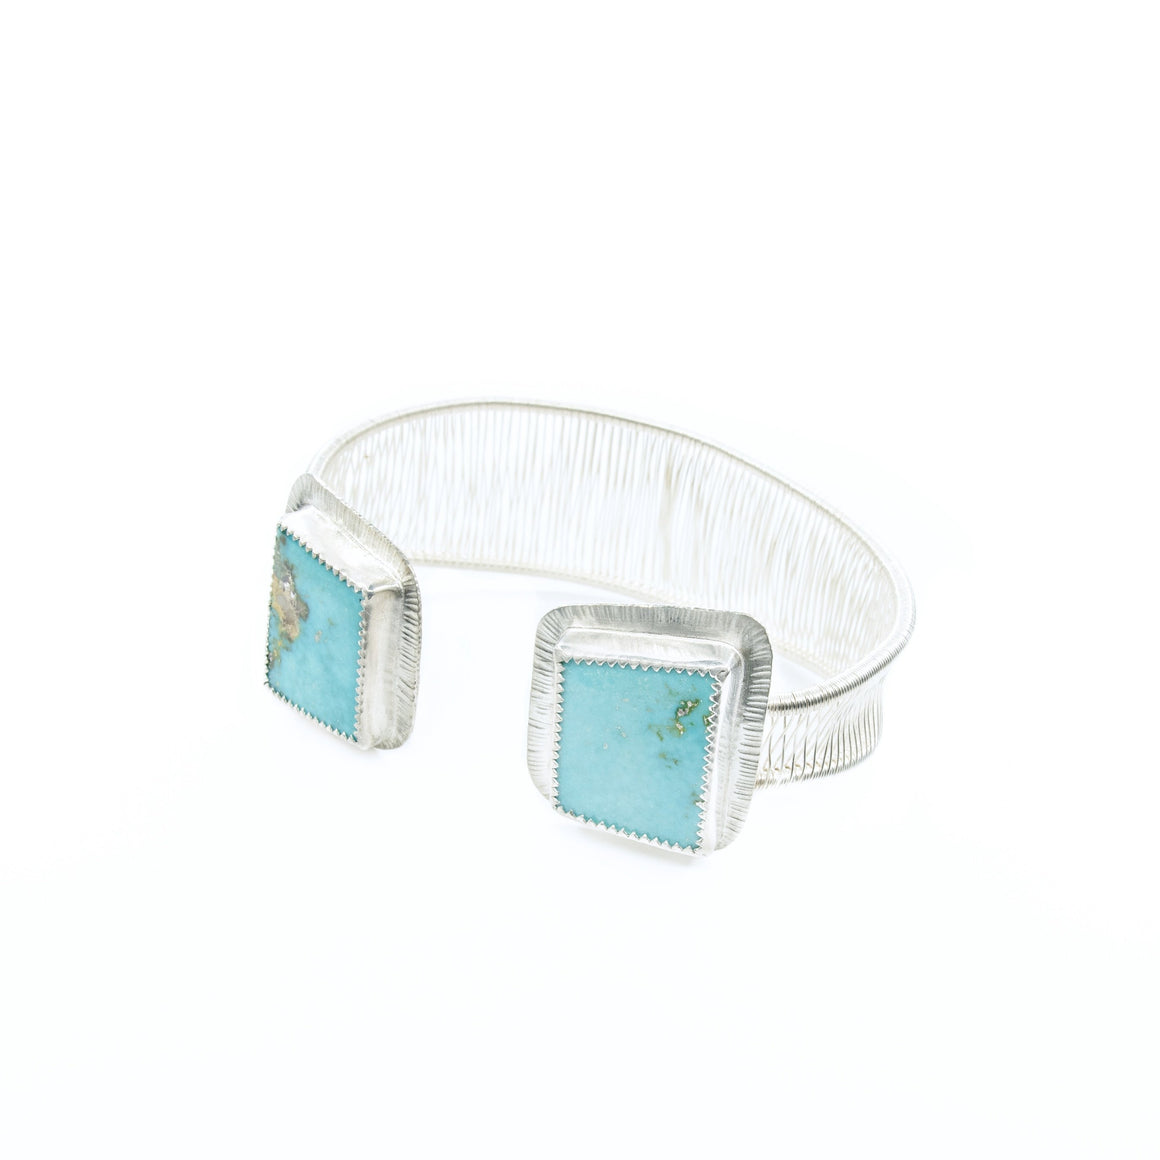 Basanah - Turquoise Mountain Double Stone Woven Silver Cuff